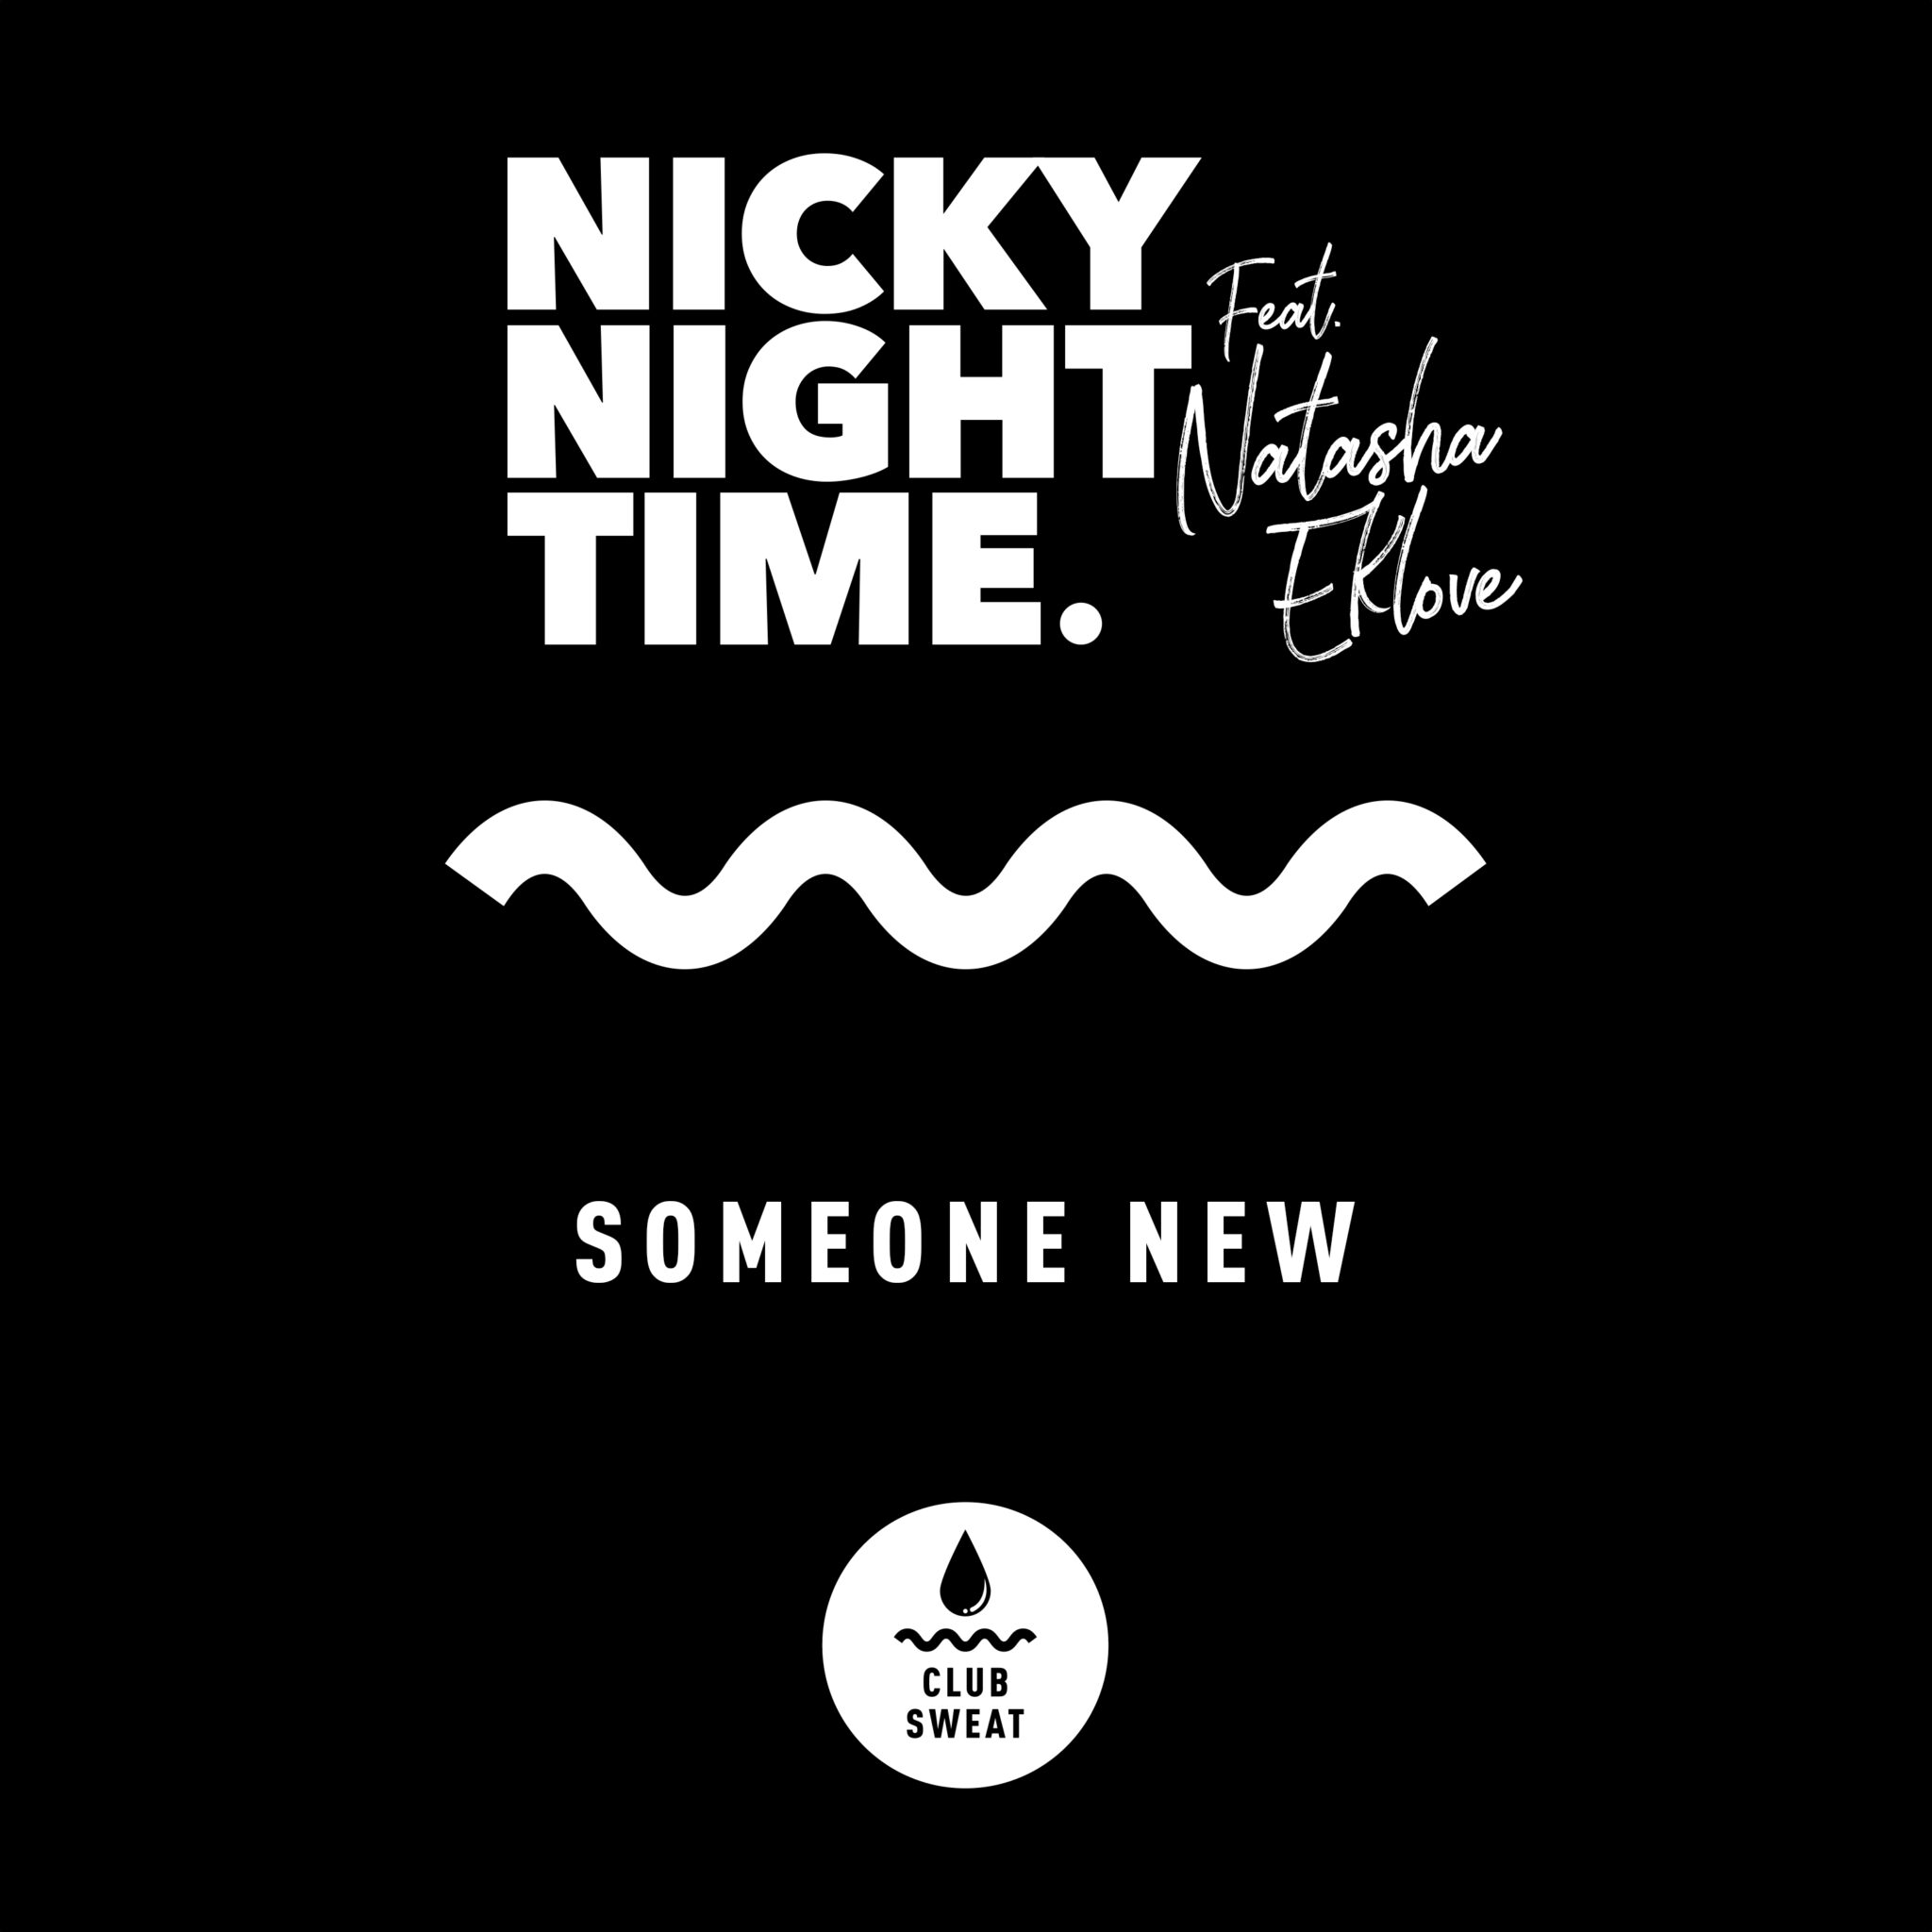 Nicky Night Time Teams up with Natasha Eklove for Heavenly New Single 'Someone New'